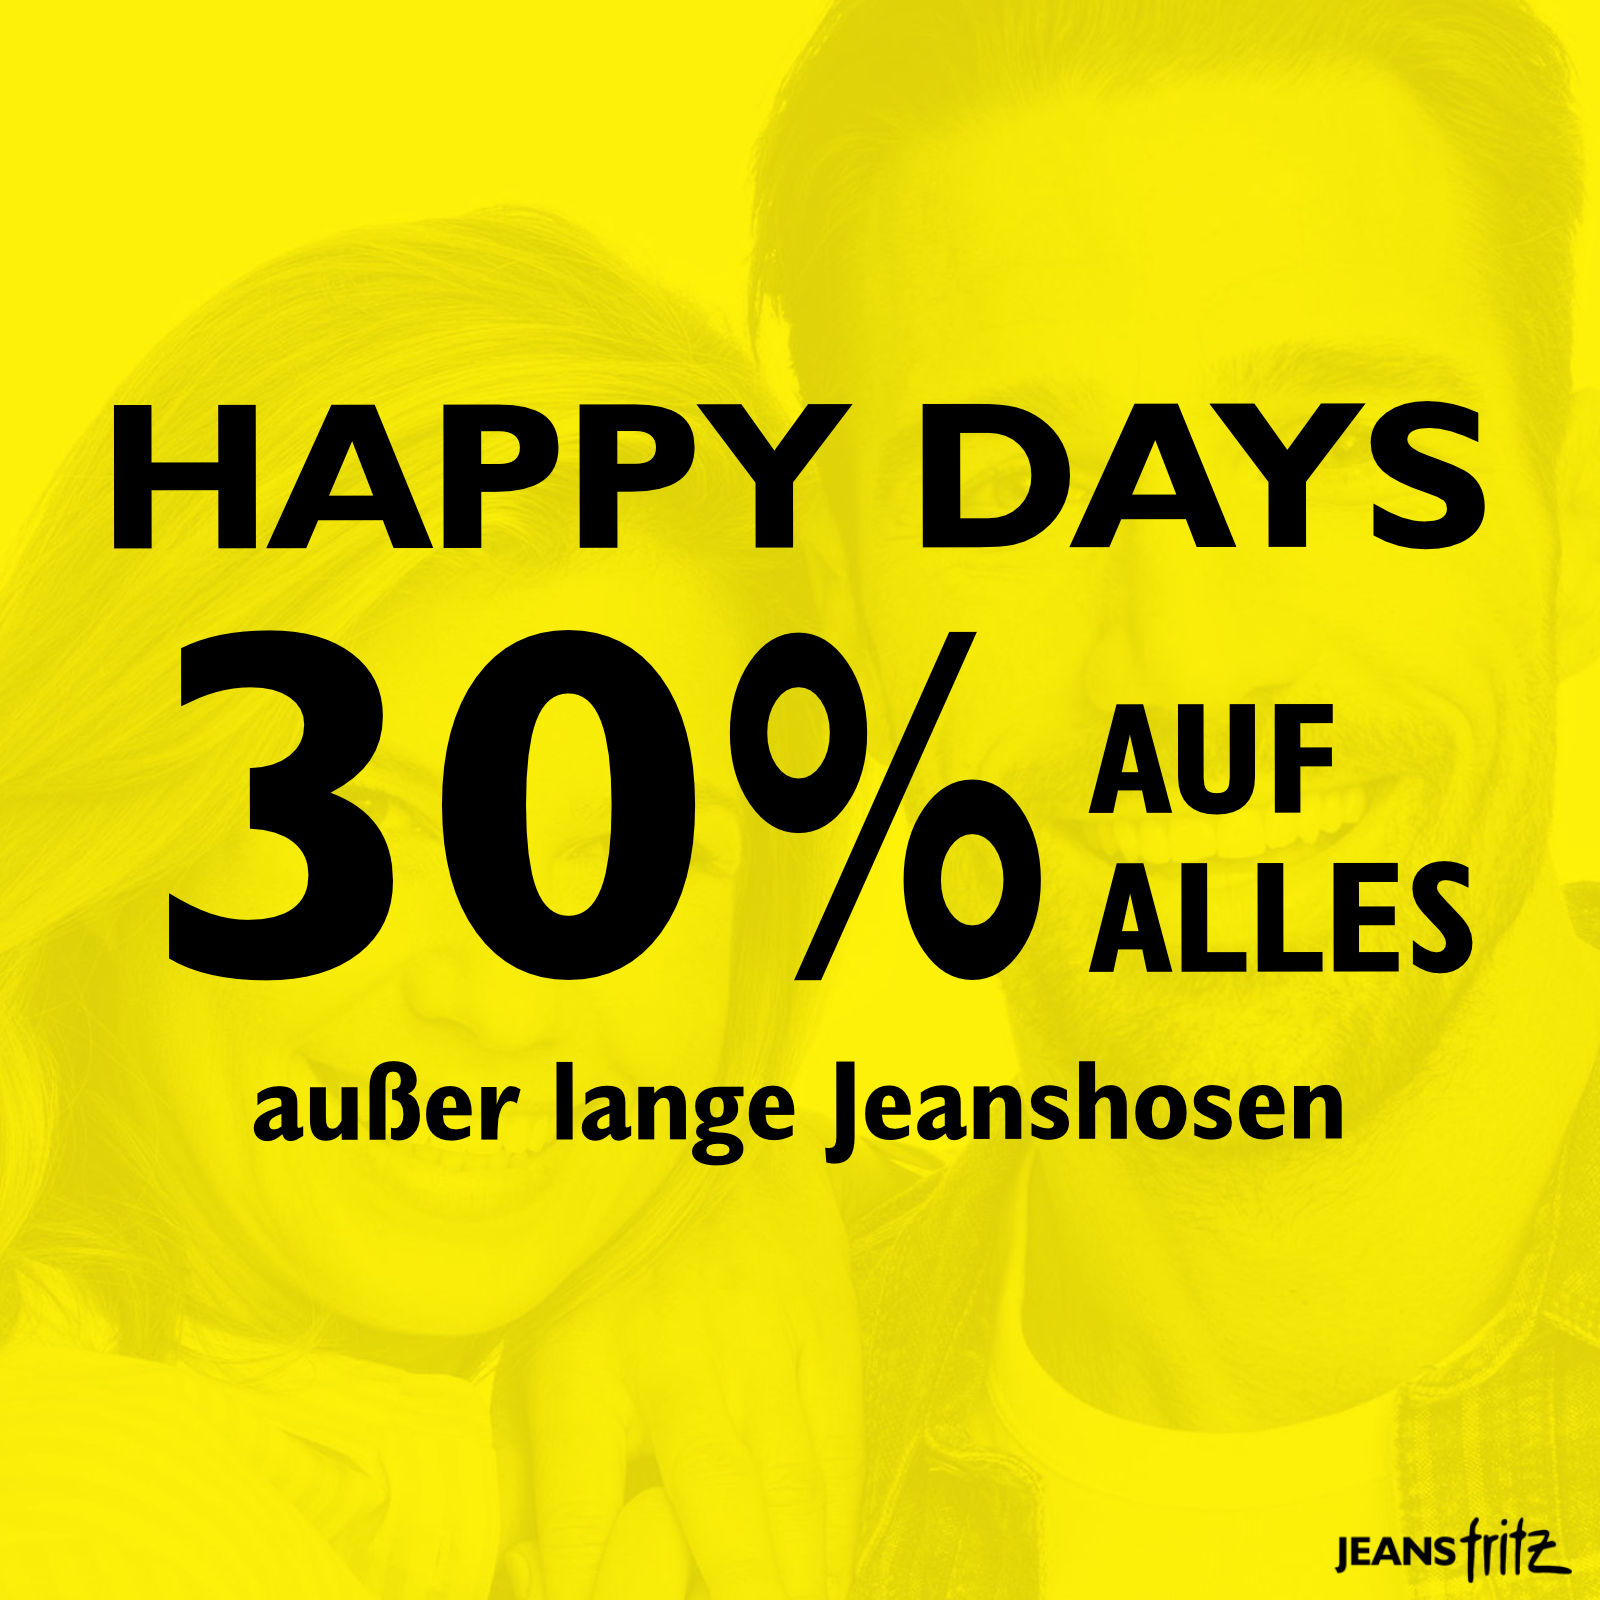 HAPPY DAYS bei Jeans Fritz